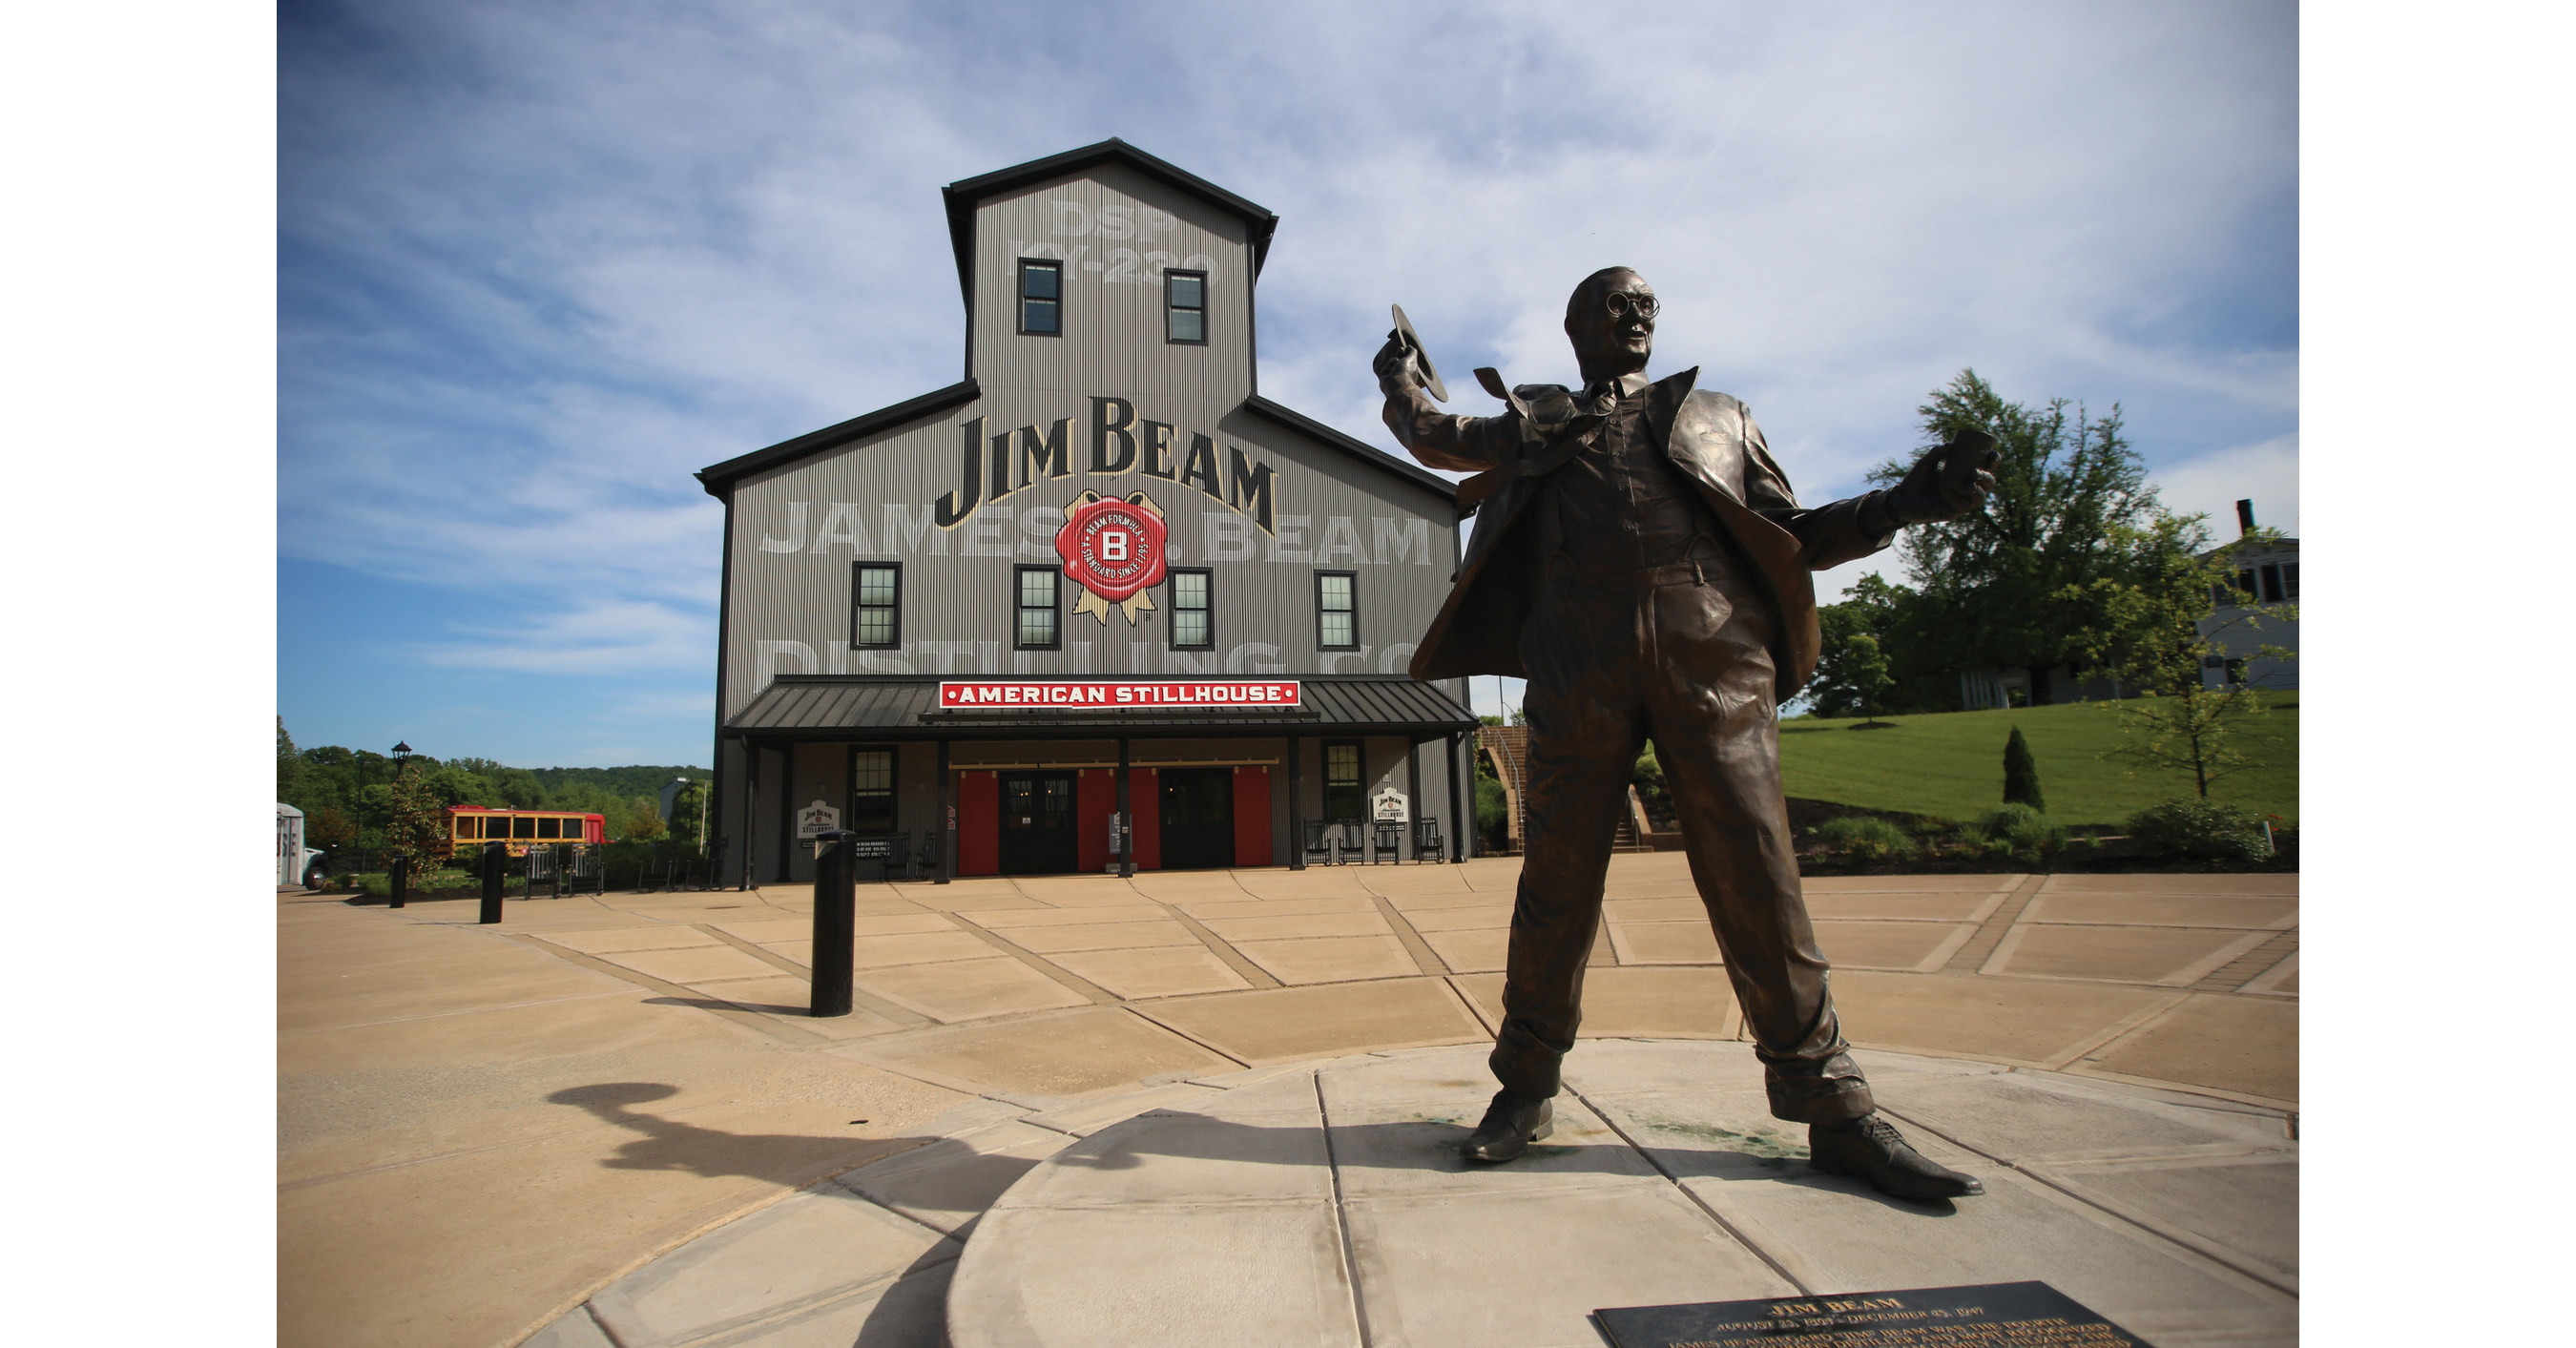 Want To Live Like A Master Distiller Jim Beam Is Opening Its Home For Rent A First Ever Property Listing For The Iconic Bourbon Brand